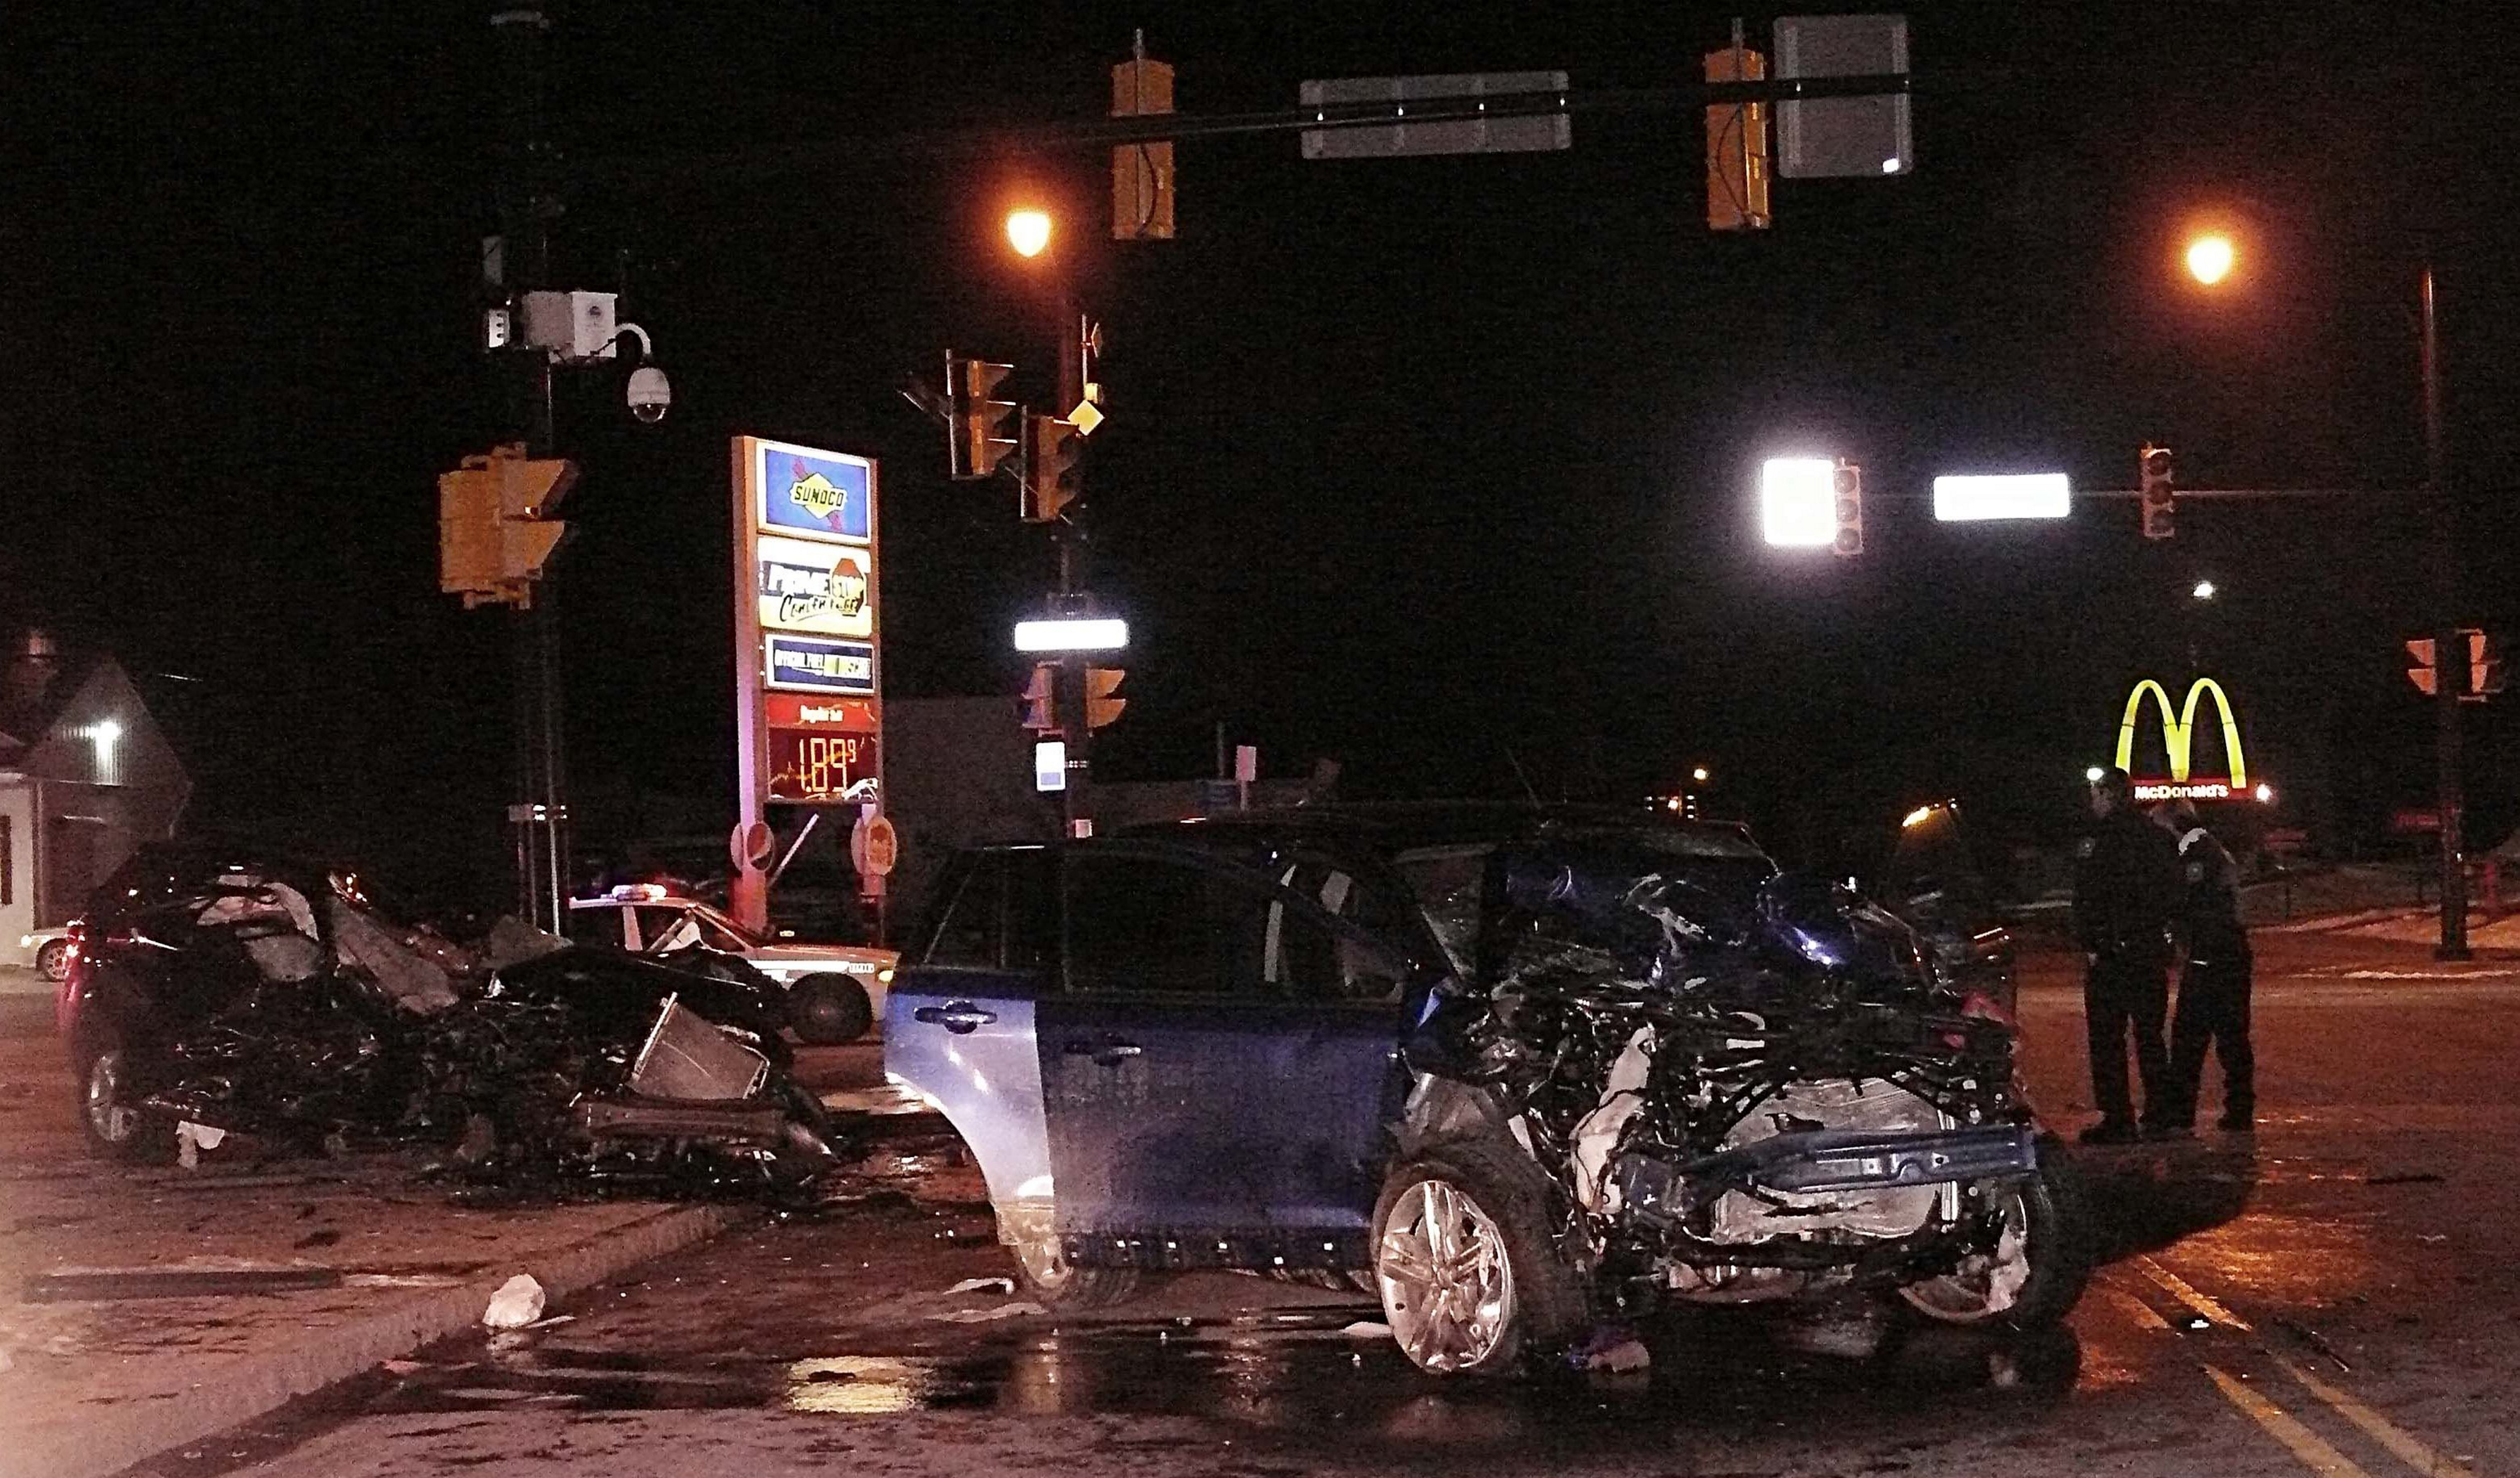 The scene of a fatal accident involving two cars Friday night at East Delavan and Grider. (JoAnne McNamara/Special to The News)